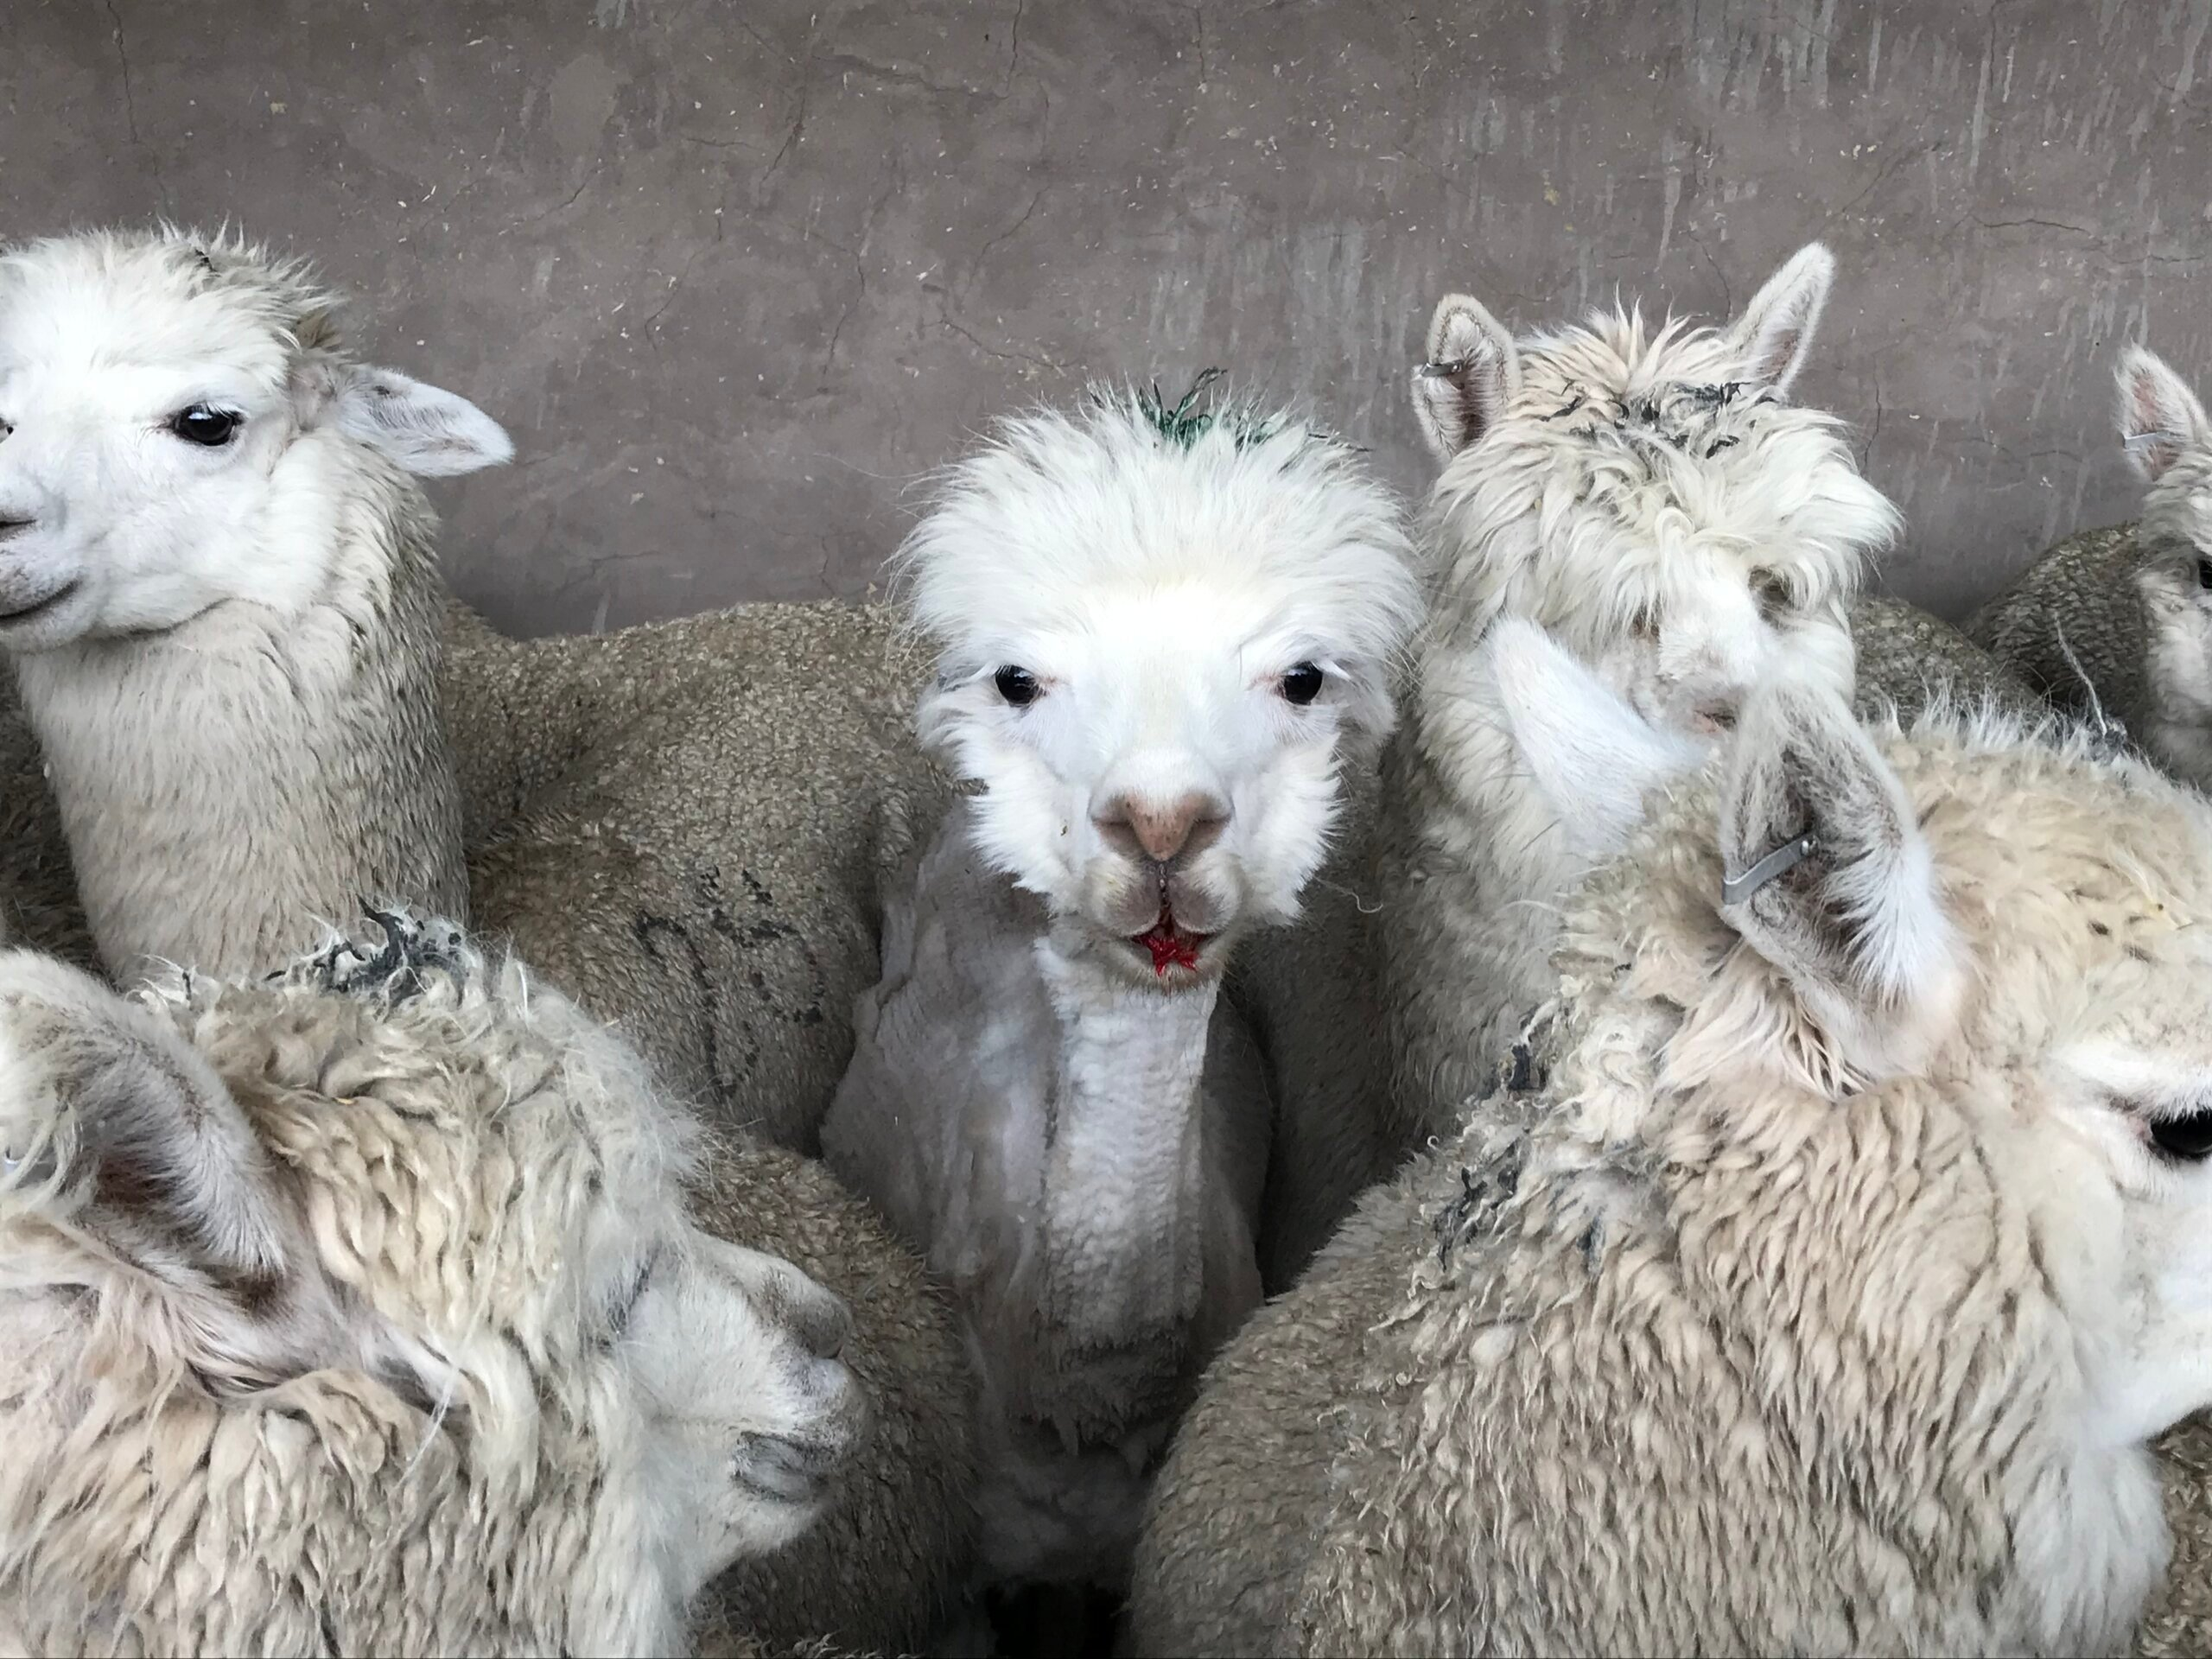 Video: Crying, Vomiting Alpacas Tied and Cut Up for Wool – Help Them!